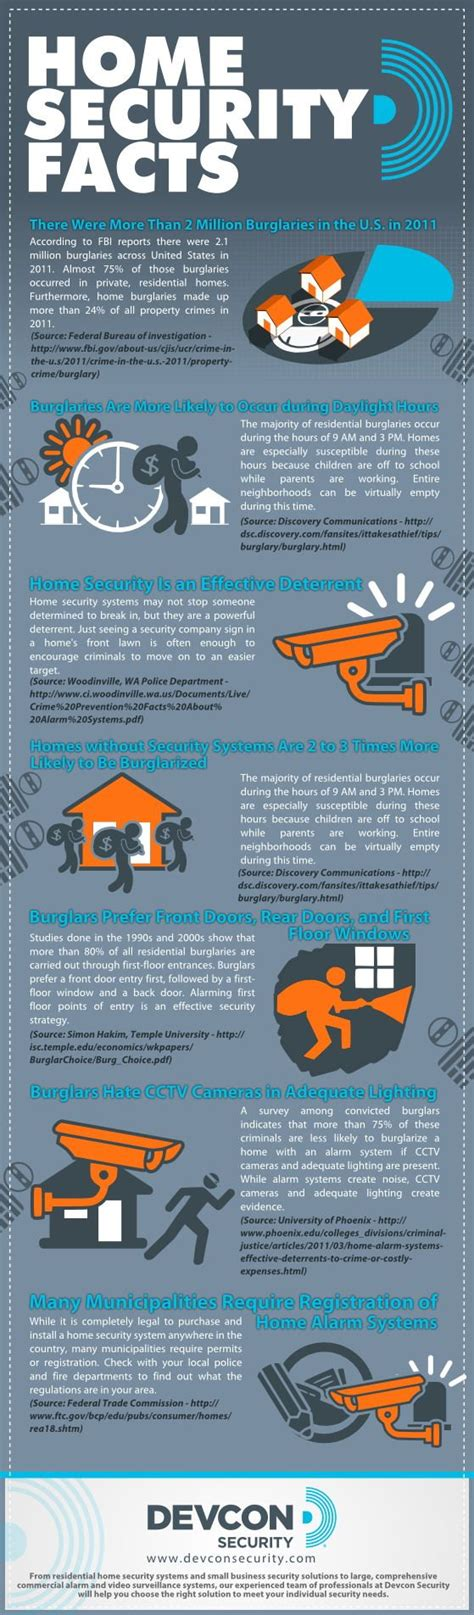 home security facts infographic doomsday gear